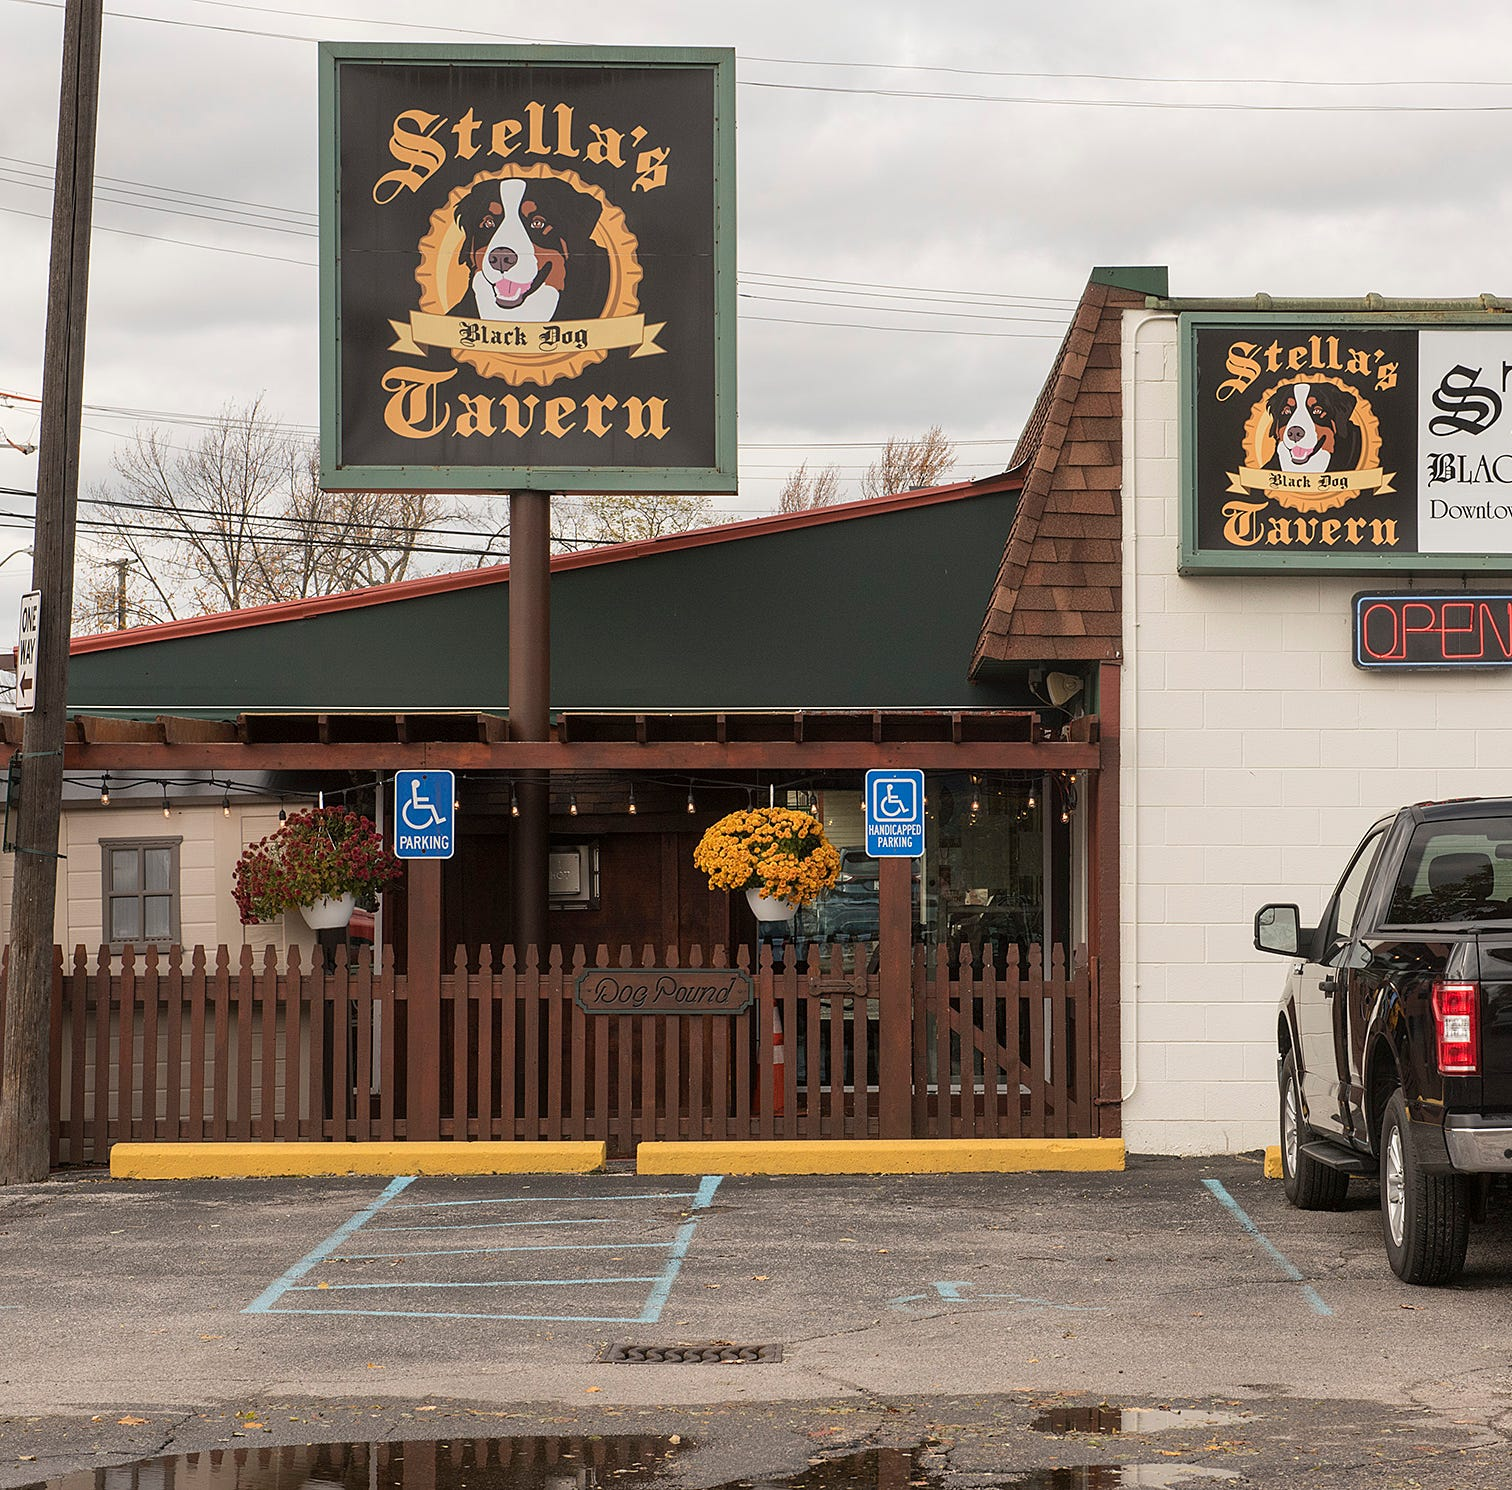 Stella's Black Dog Tavern stays put on Fralick, plans second location at Station 885